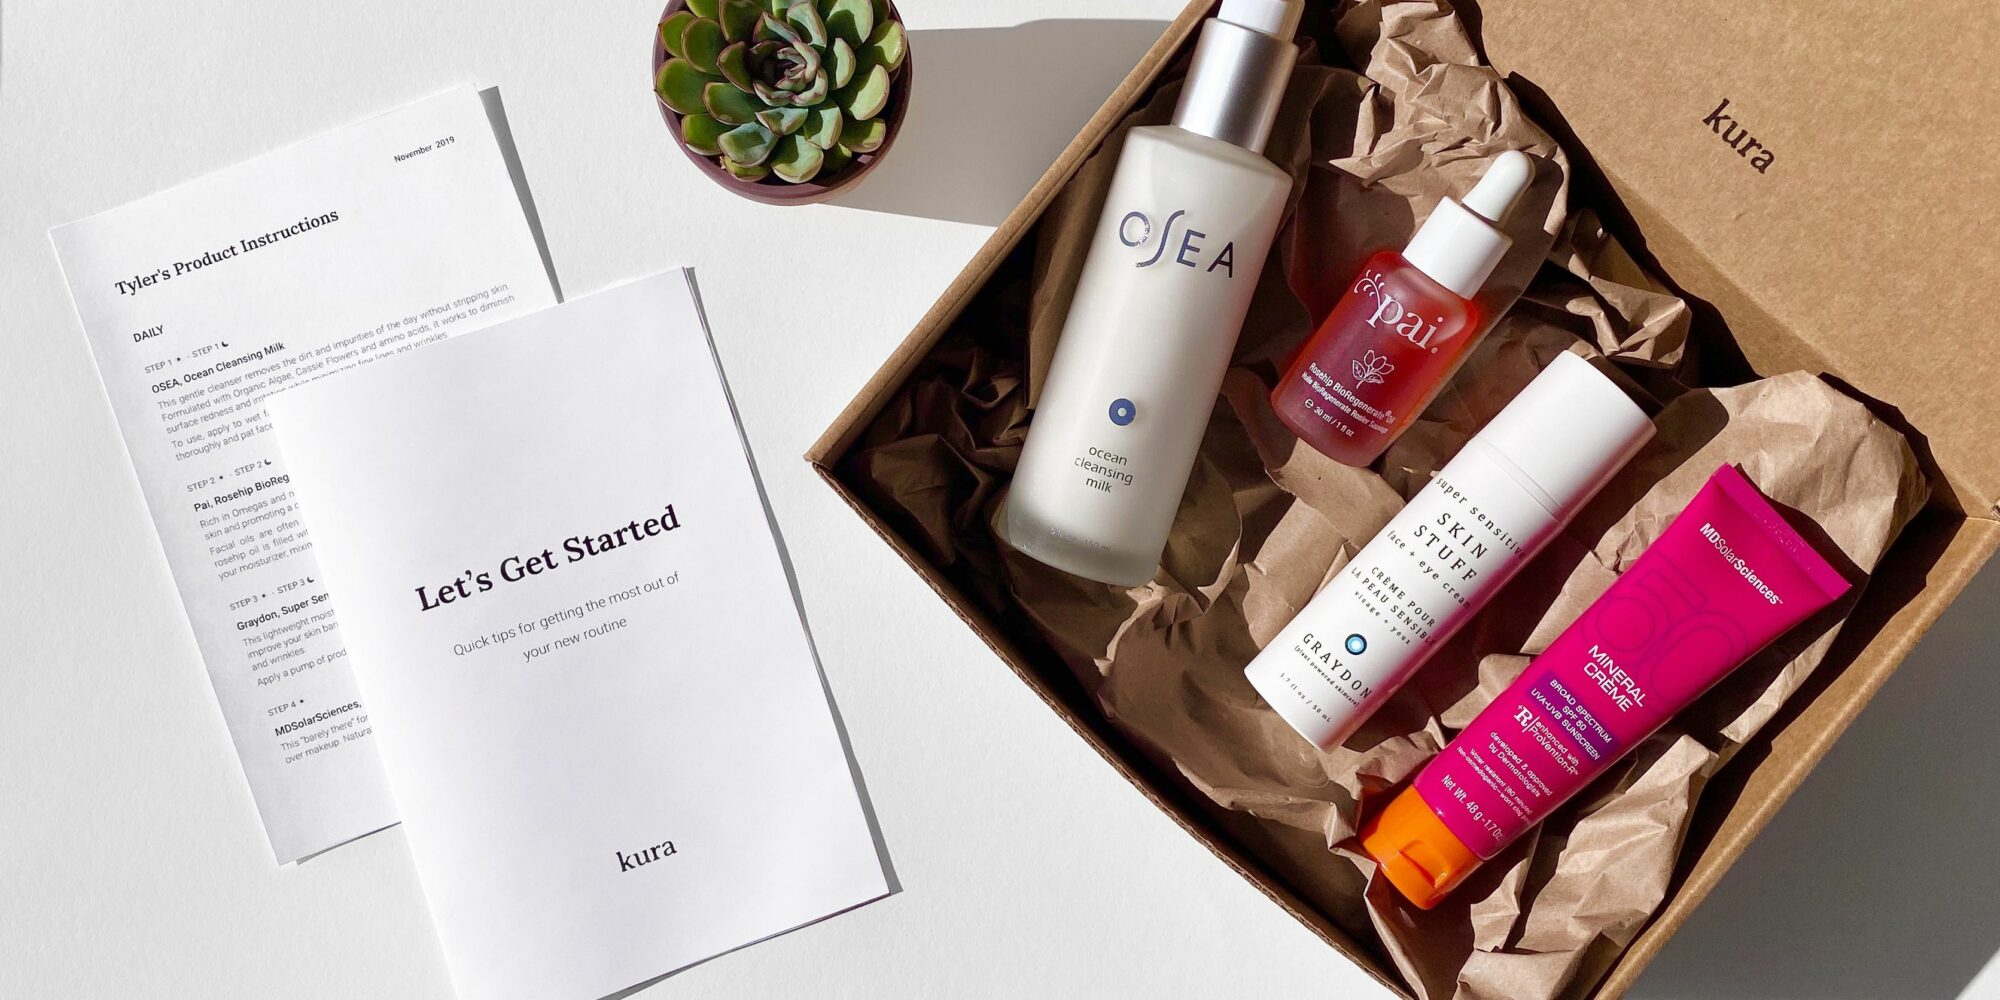 """""""Stitch Fix For Skincare"""": New E-Tailer Kura Skin Makes It Easy To Put Together Skincare Routines"""